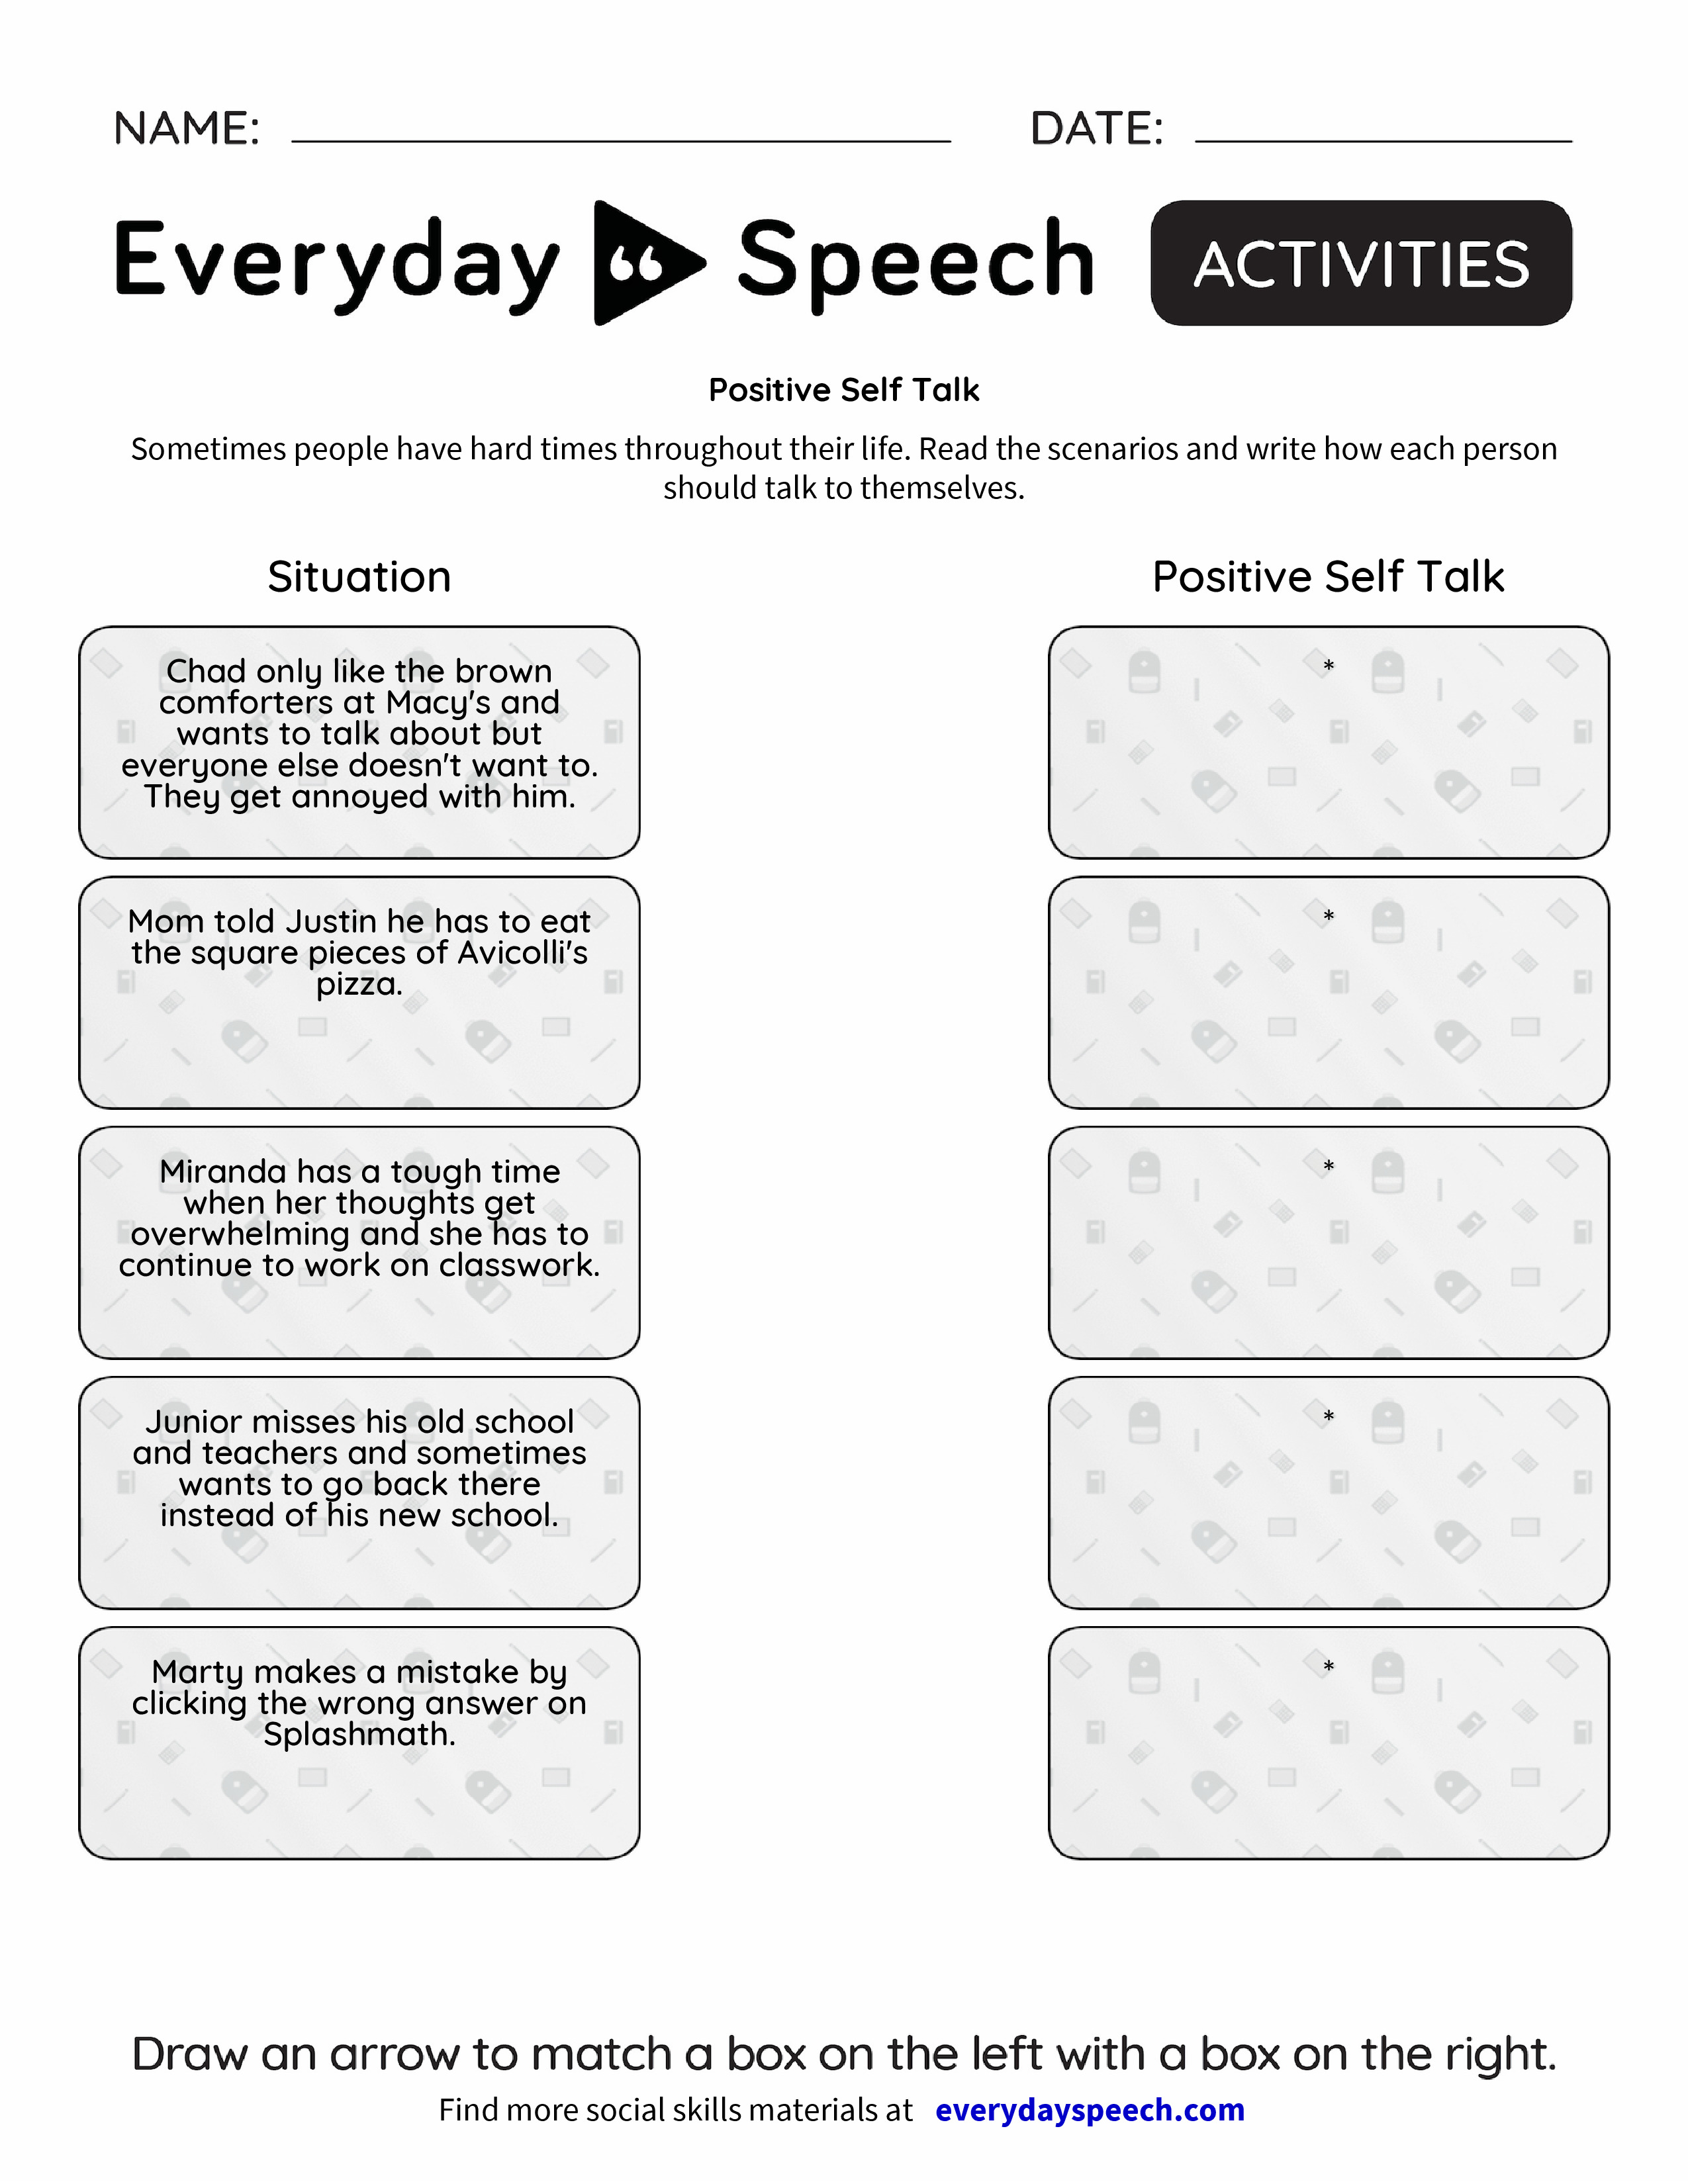 How to Teach Positive Self-Talk | Free, Counselling and School